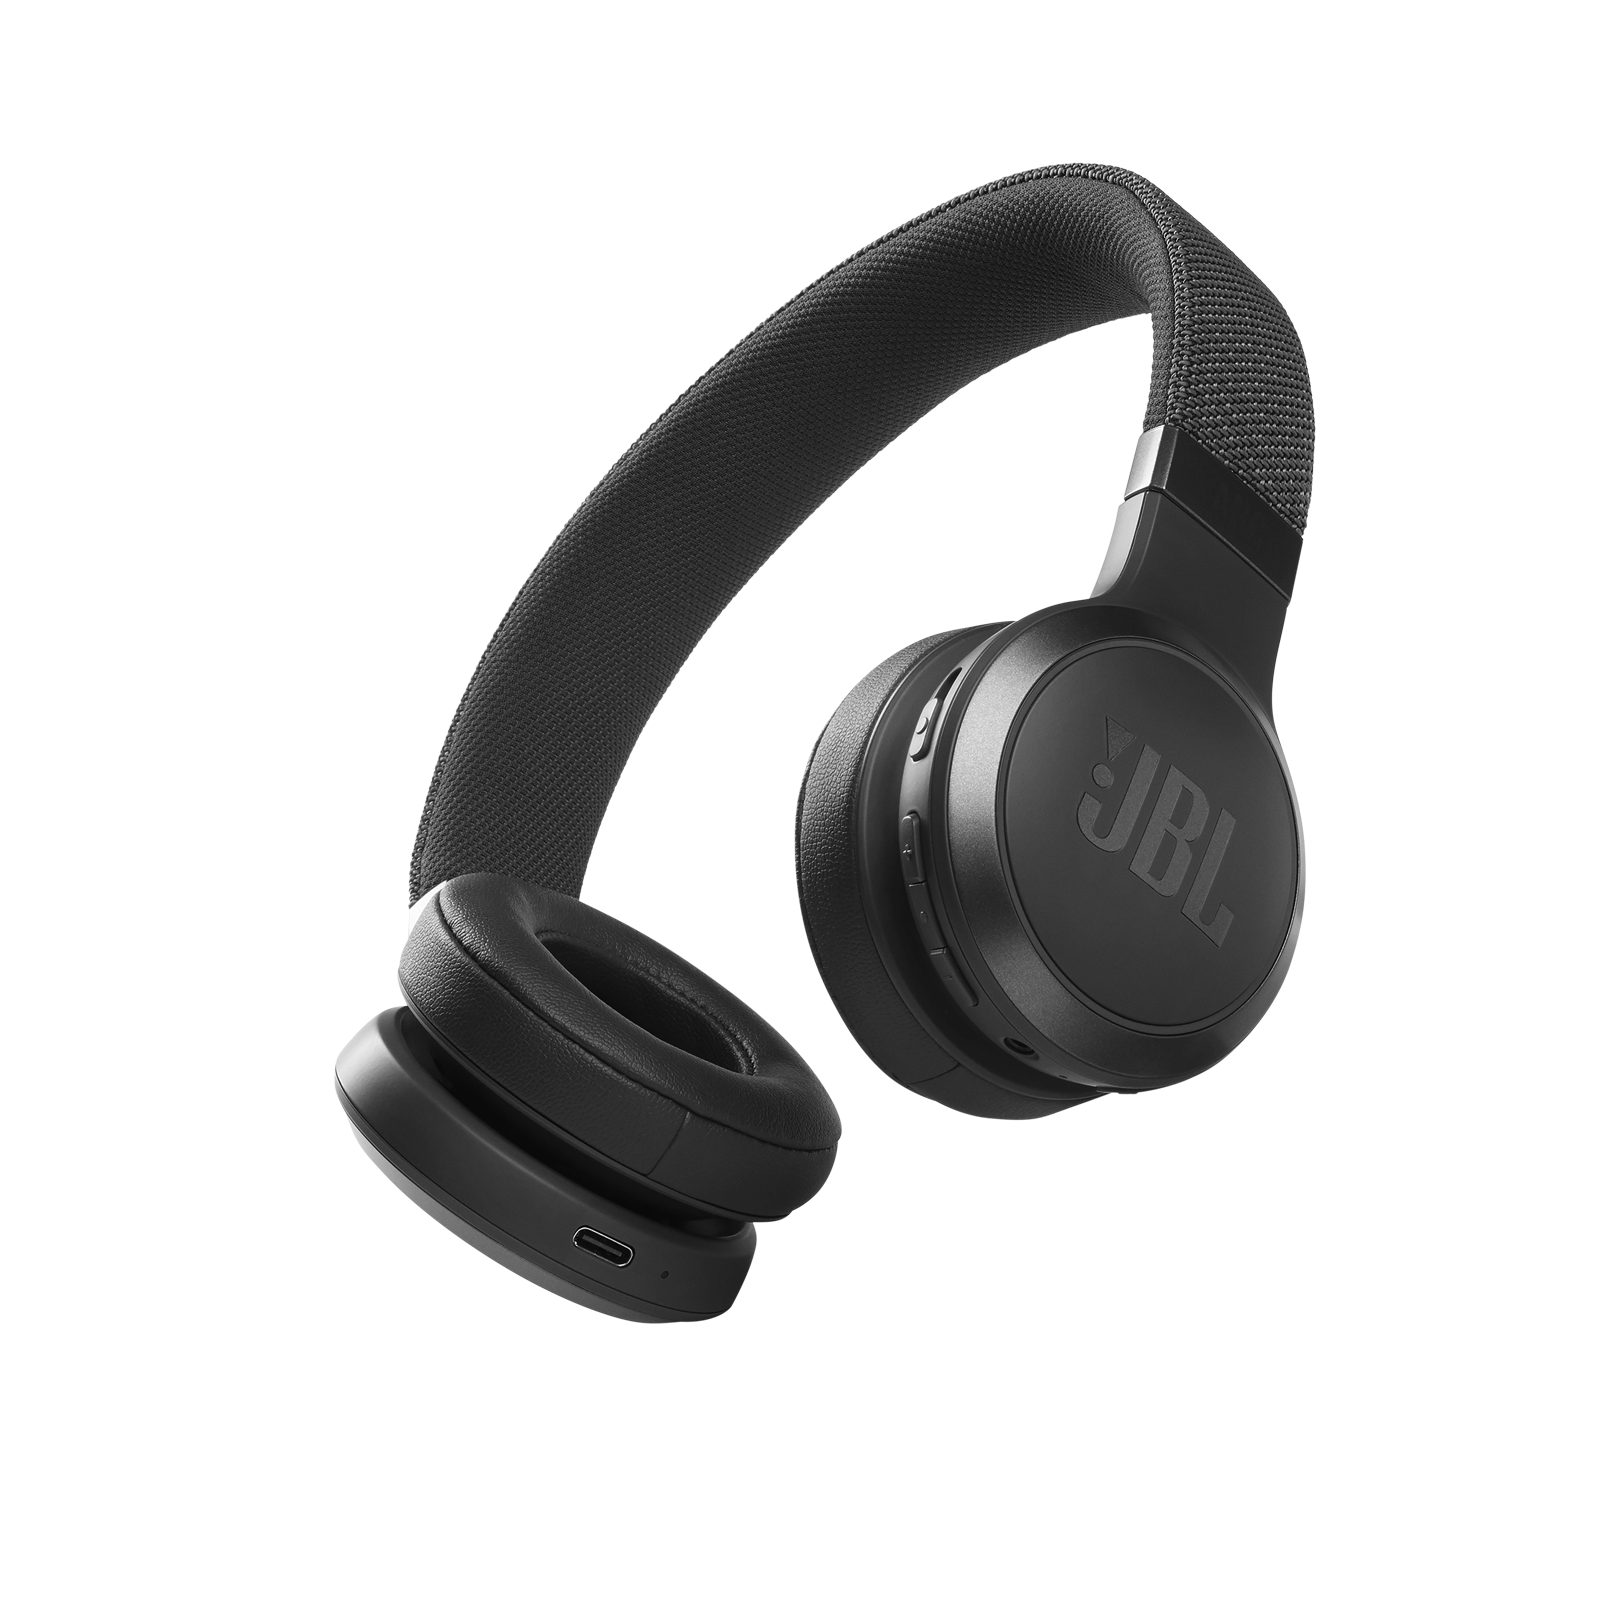 JBL Live 460NC - Black - WIRELESS ON-EAR NC HEADPHONES - Hero